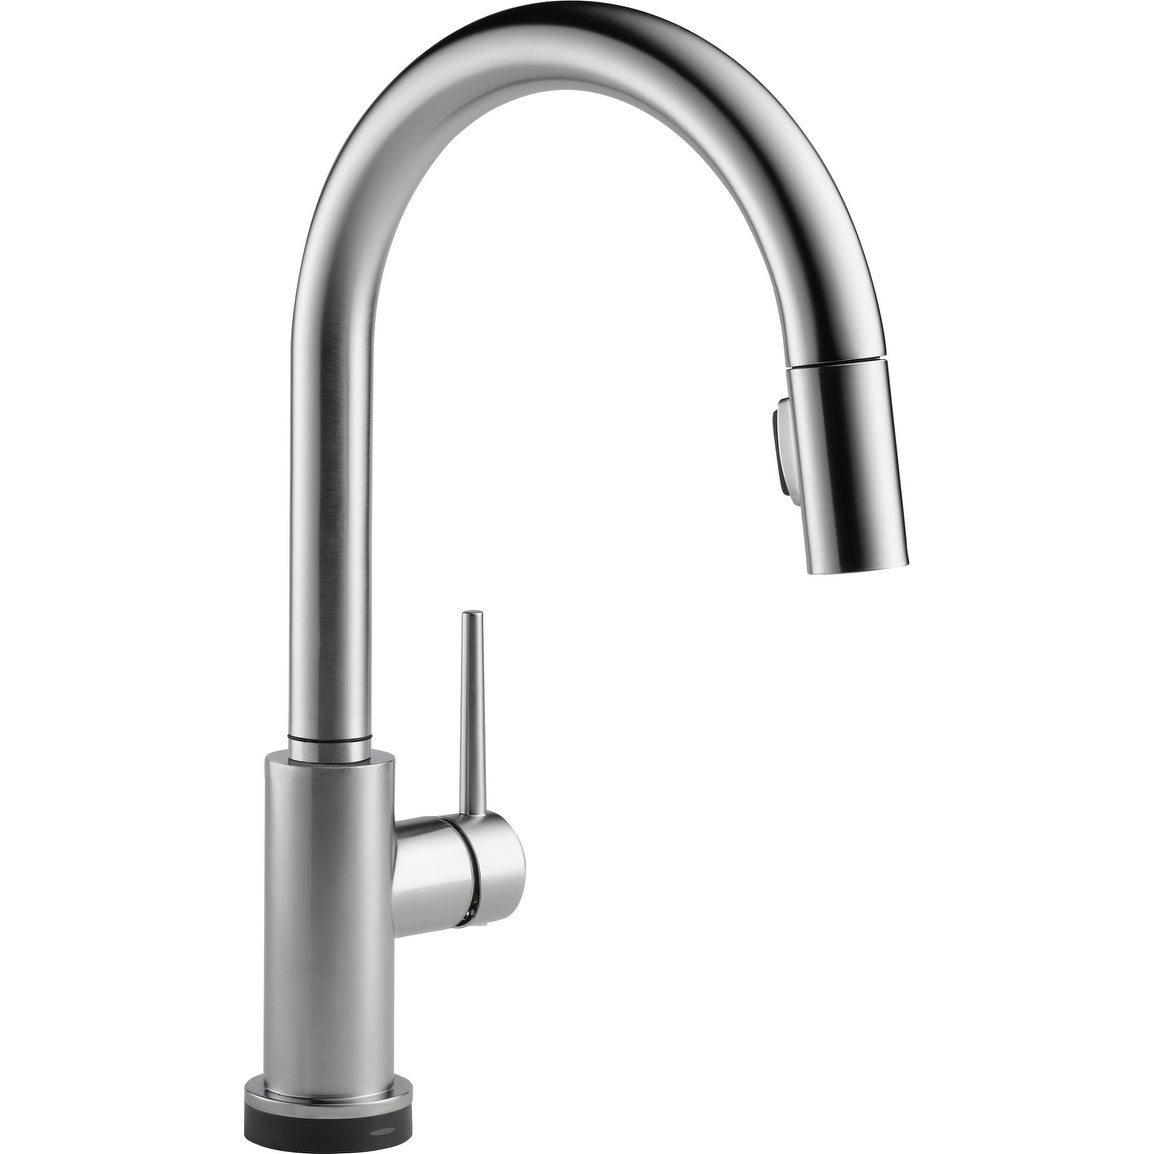 Delta 9159T-DST Trinsic Pull-Down Kitchen Faucet with On/Off Touch  Activation, Magnetic Docking Spray Head